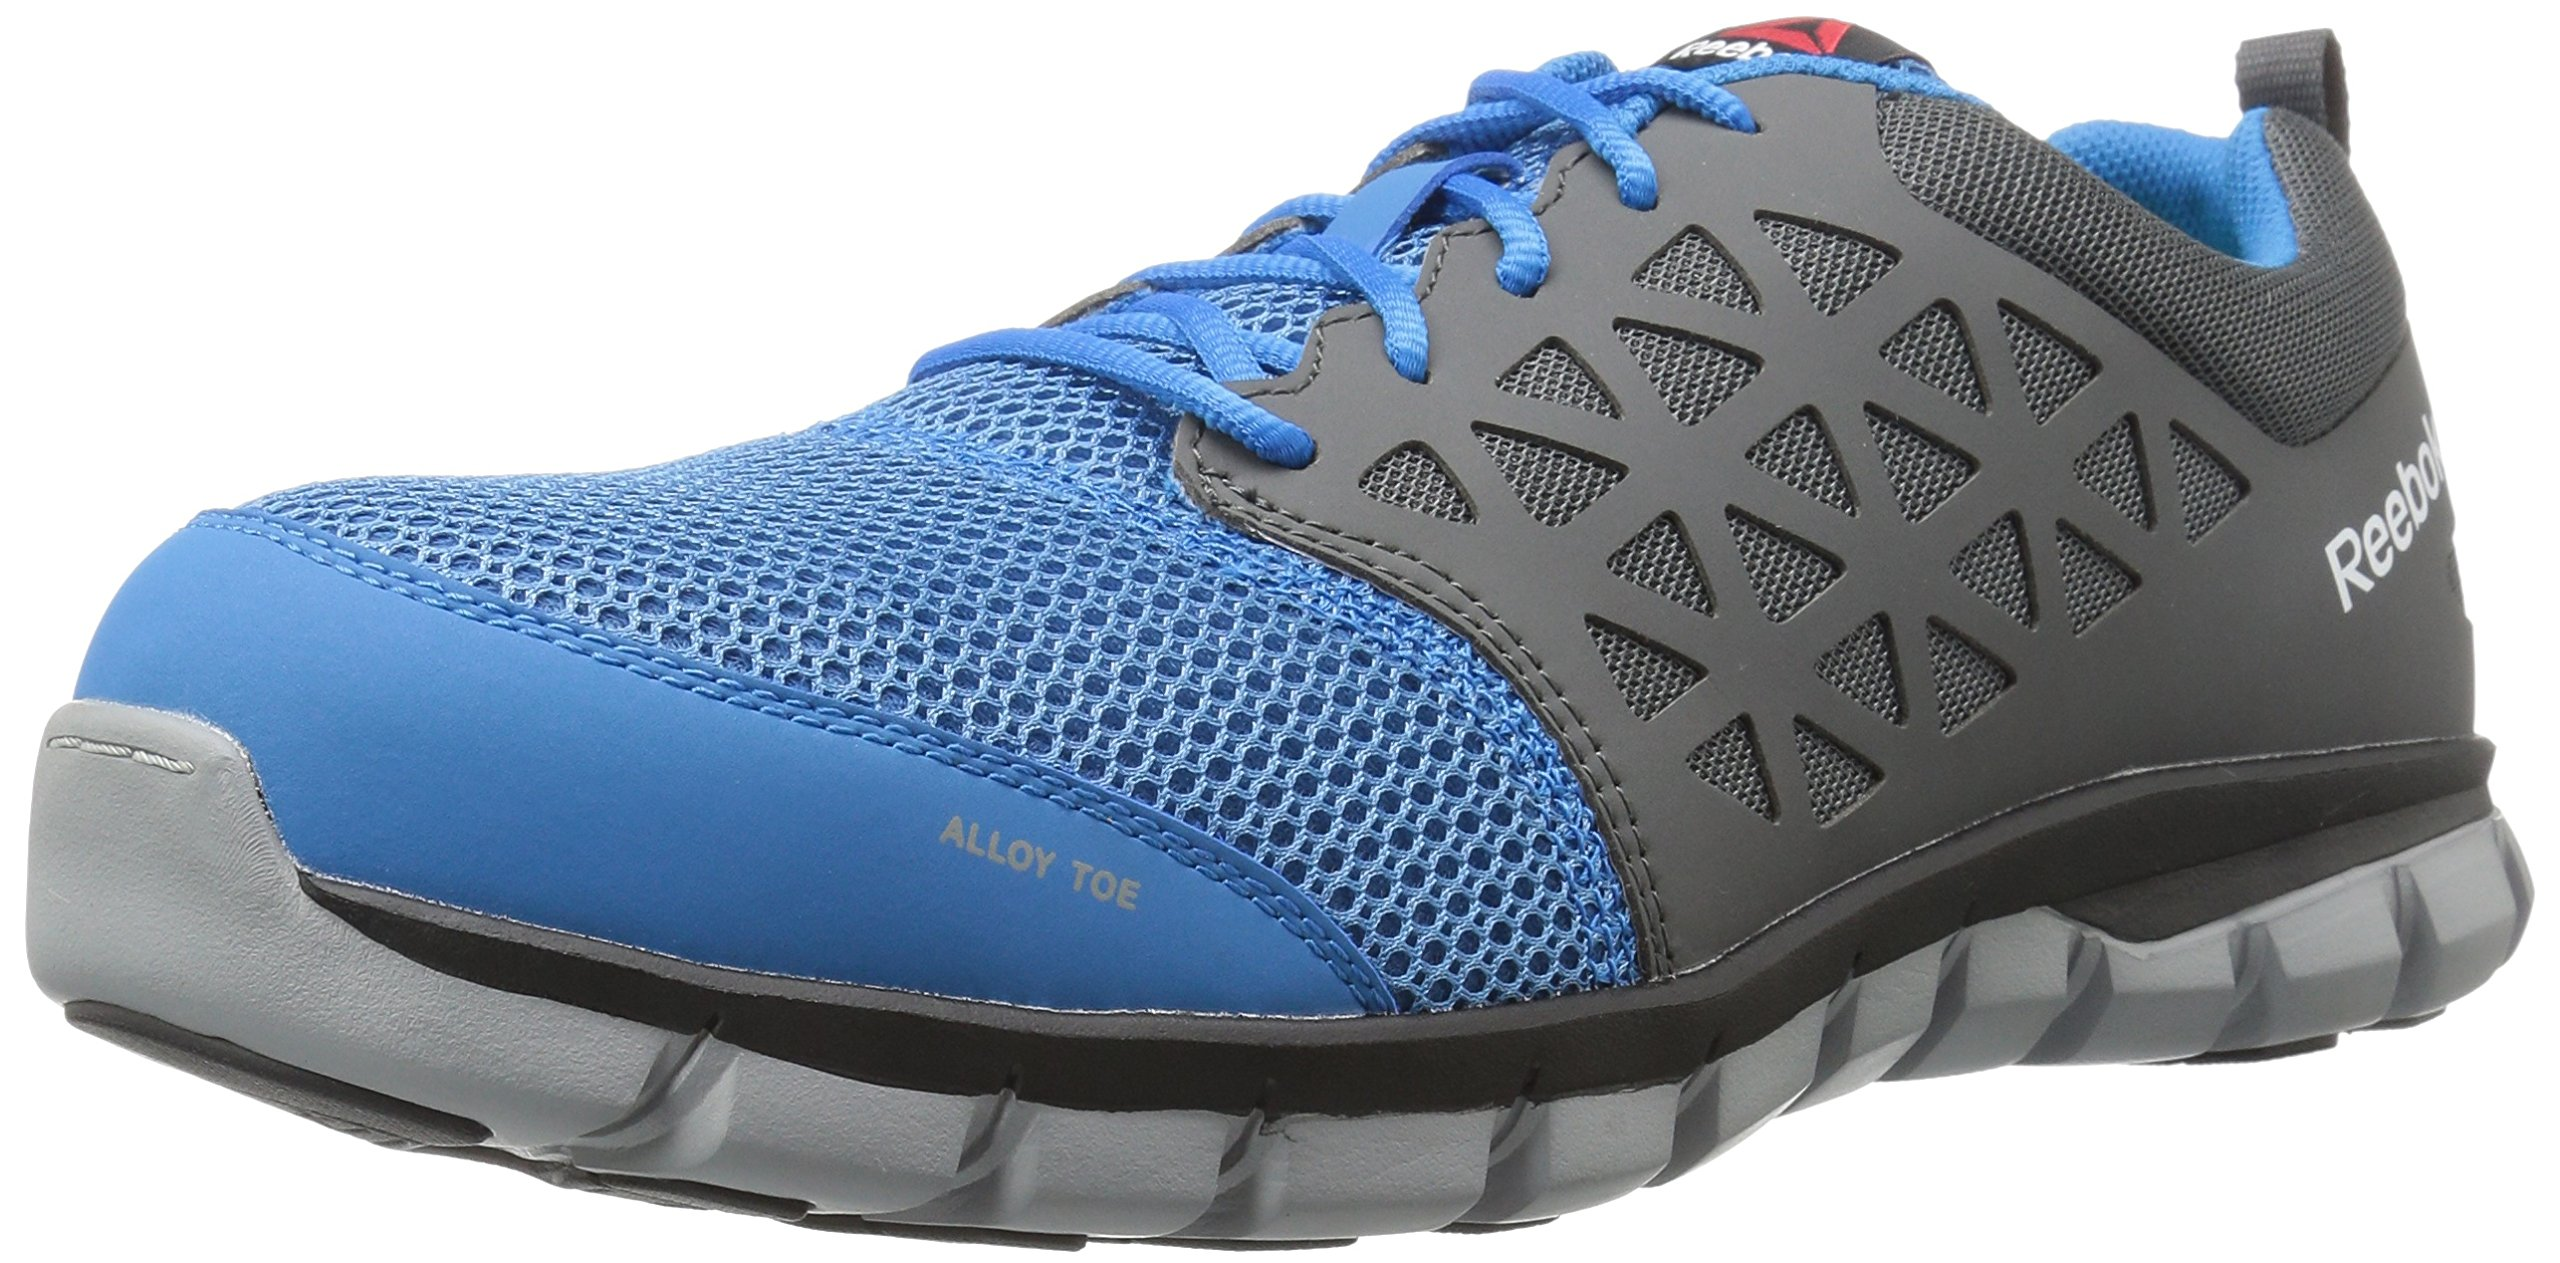 8c272cf9e5b Get Quotations · Reebok Work Men s Sublite Cushion Work RB4040 Industrial  and Construction Shoe